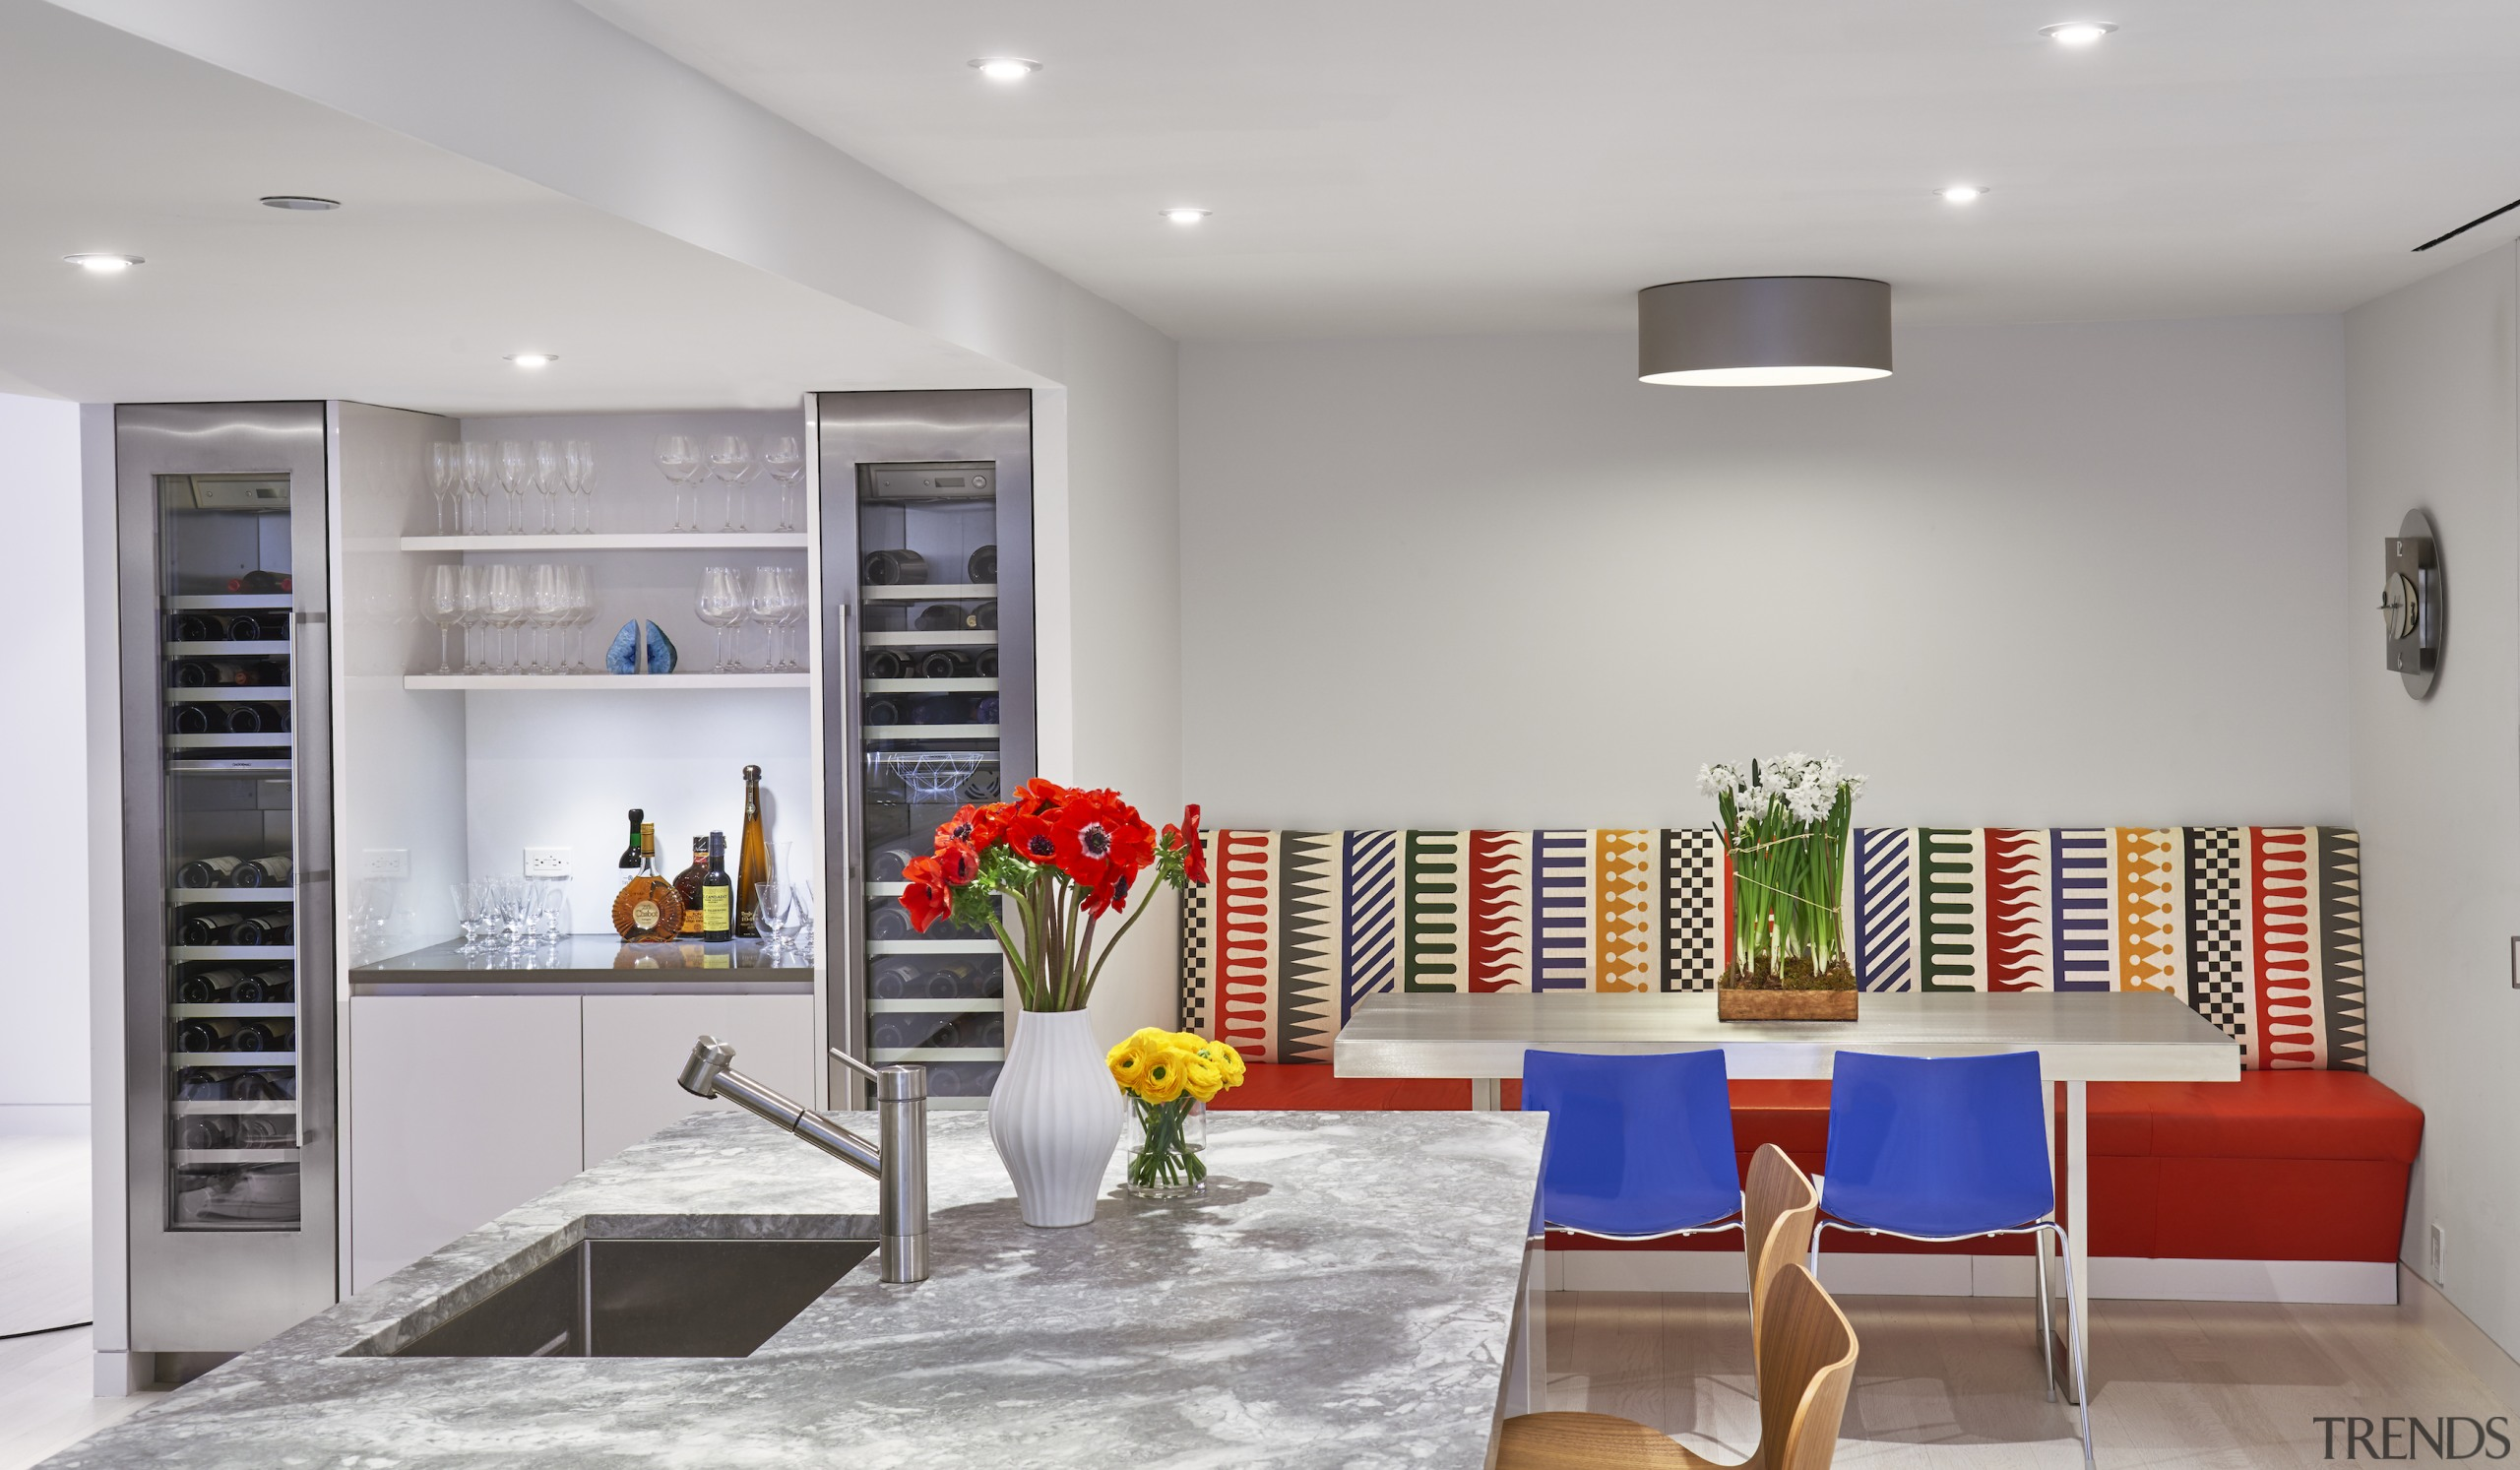 The kitchen also includes a custom banquette upholstered